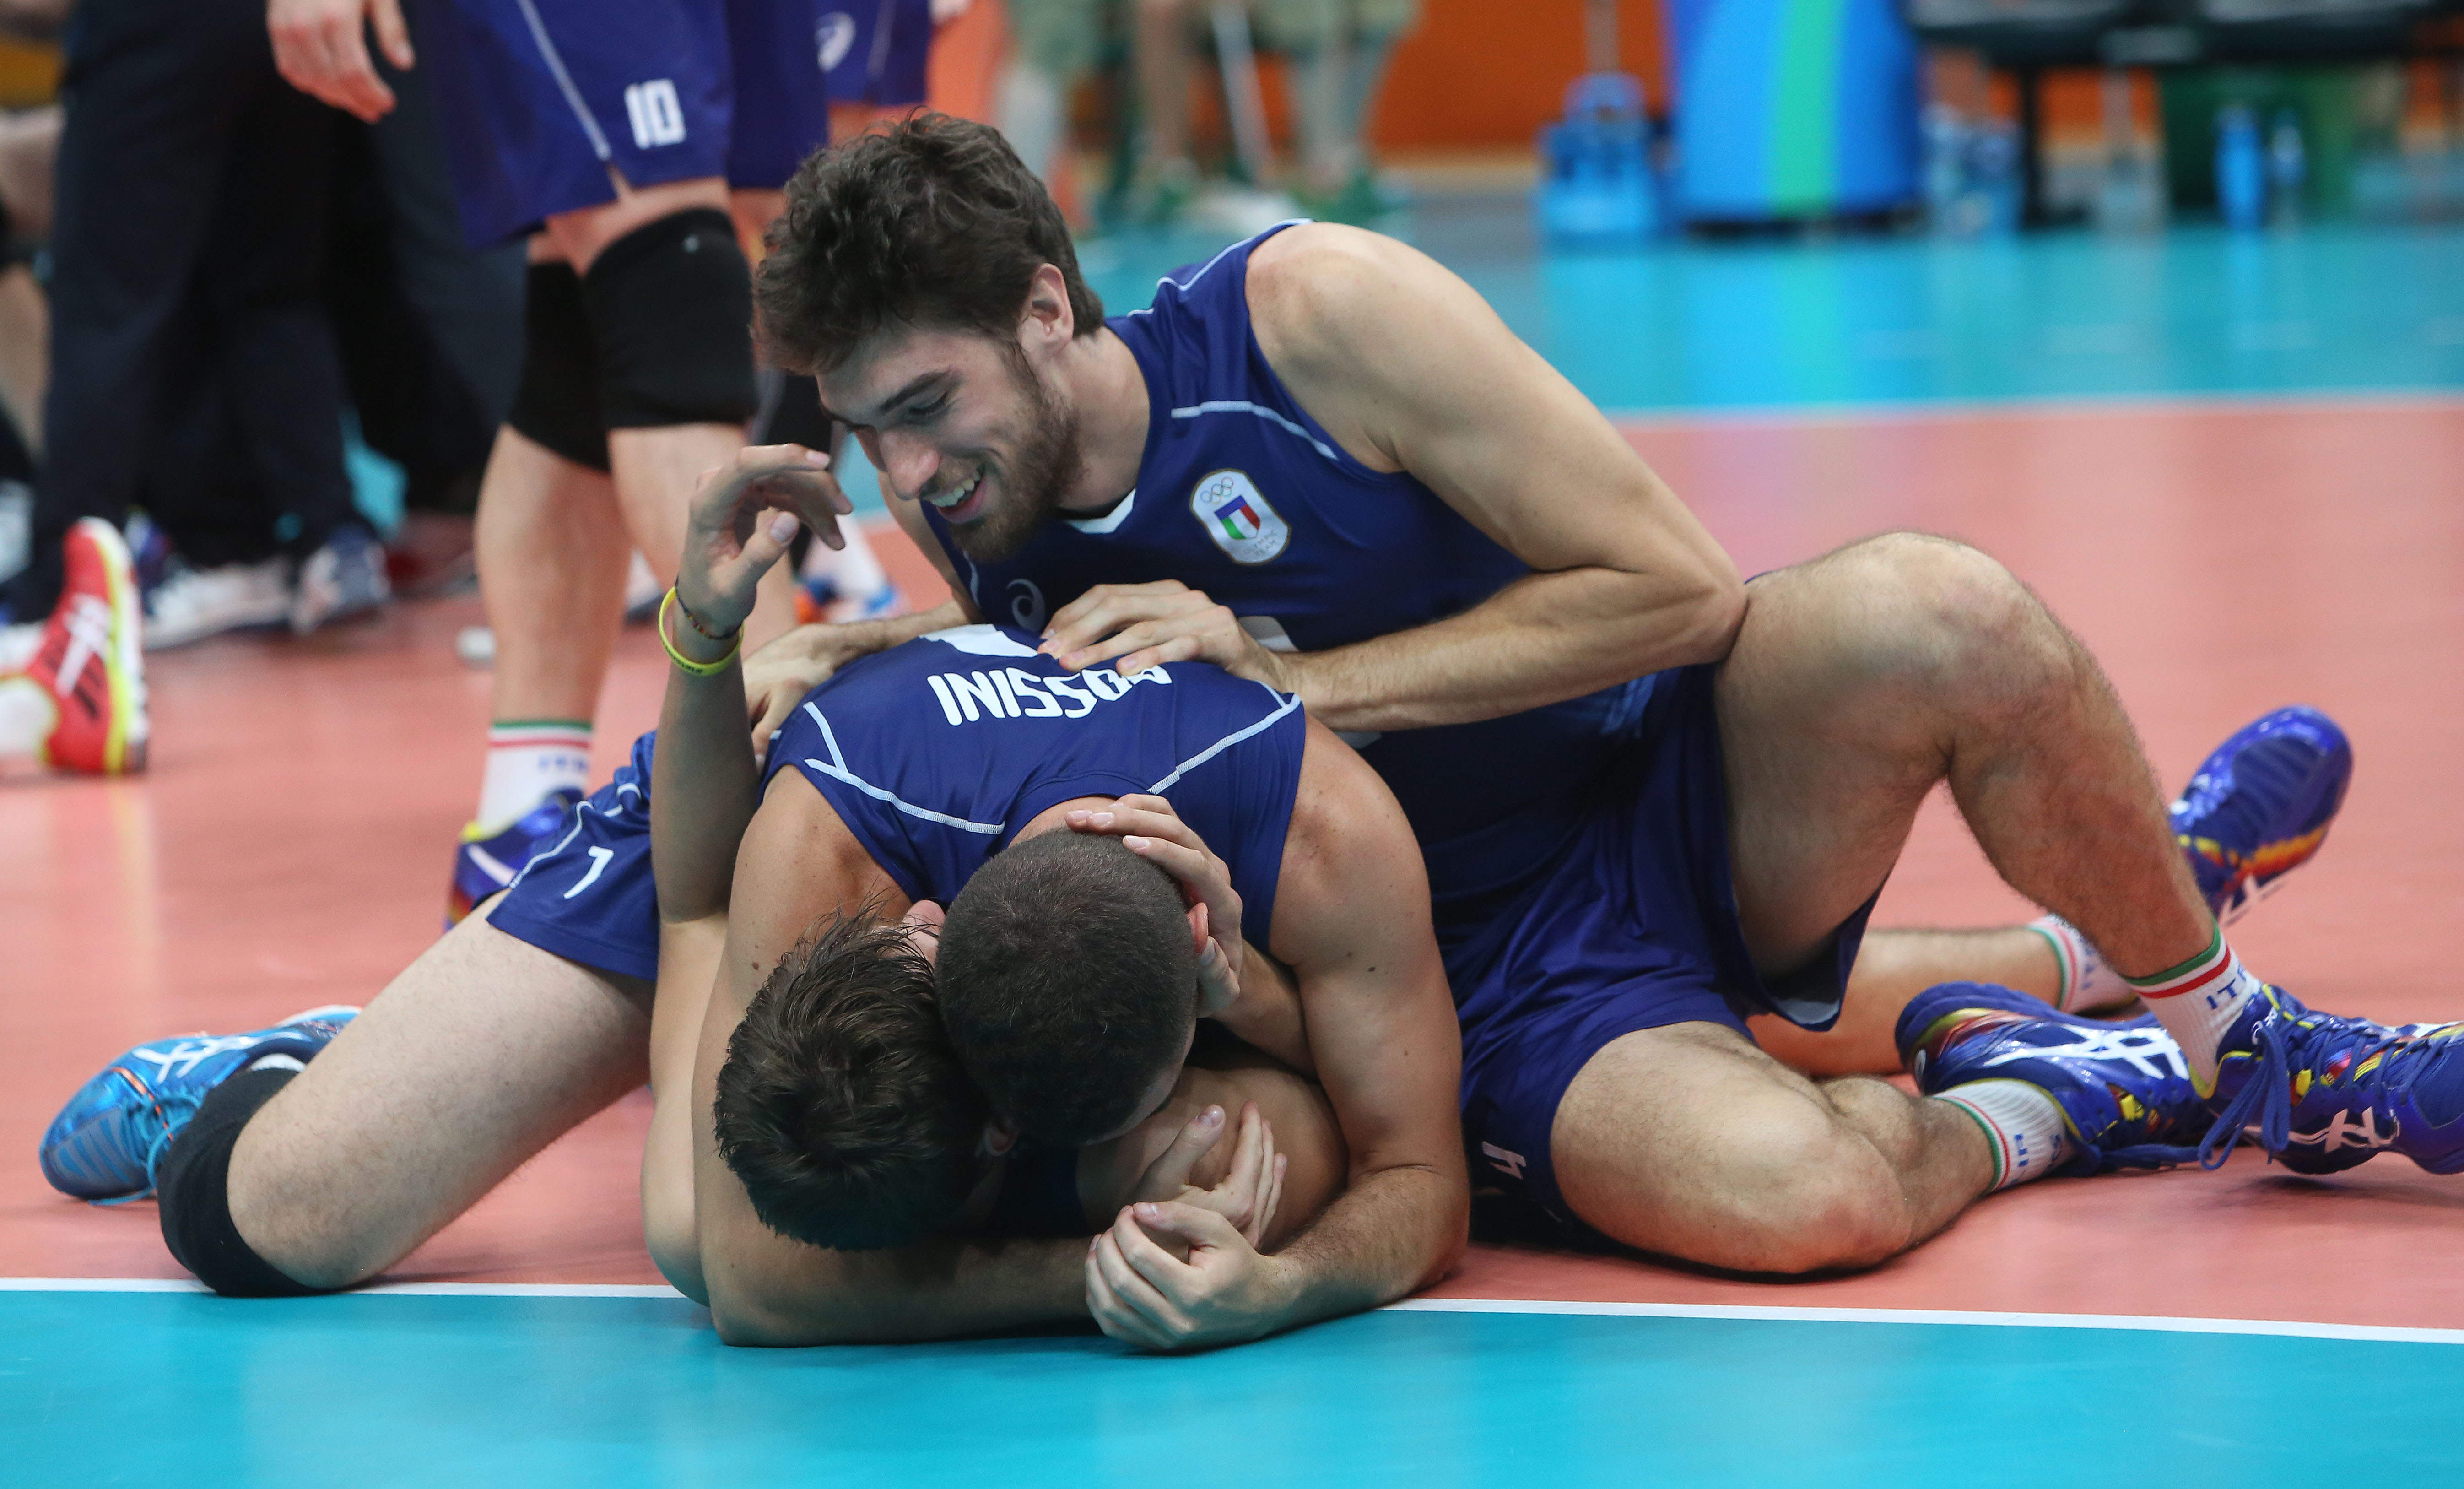 http://www.fivb.org/Vis2009/Images/GetImage.asmx?No=201653355&maxSize=960